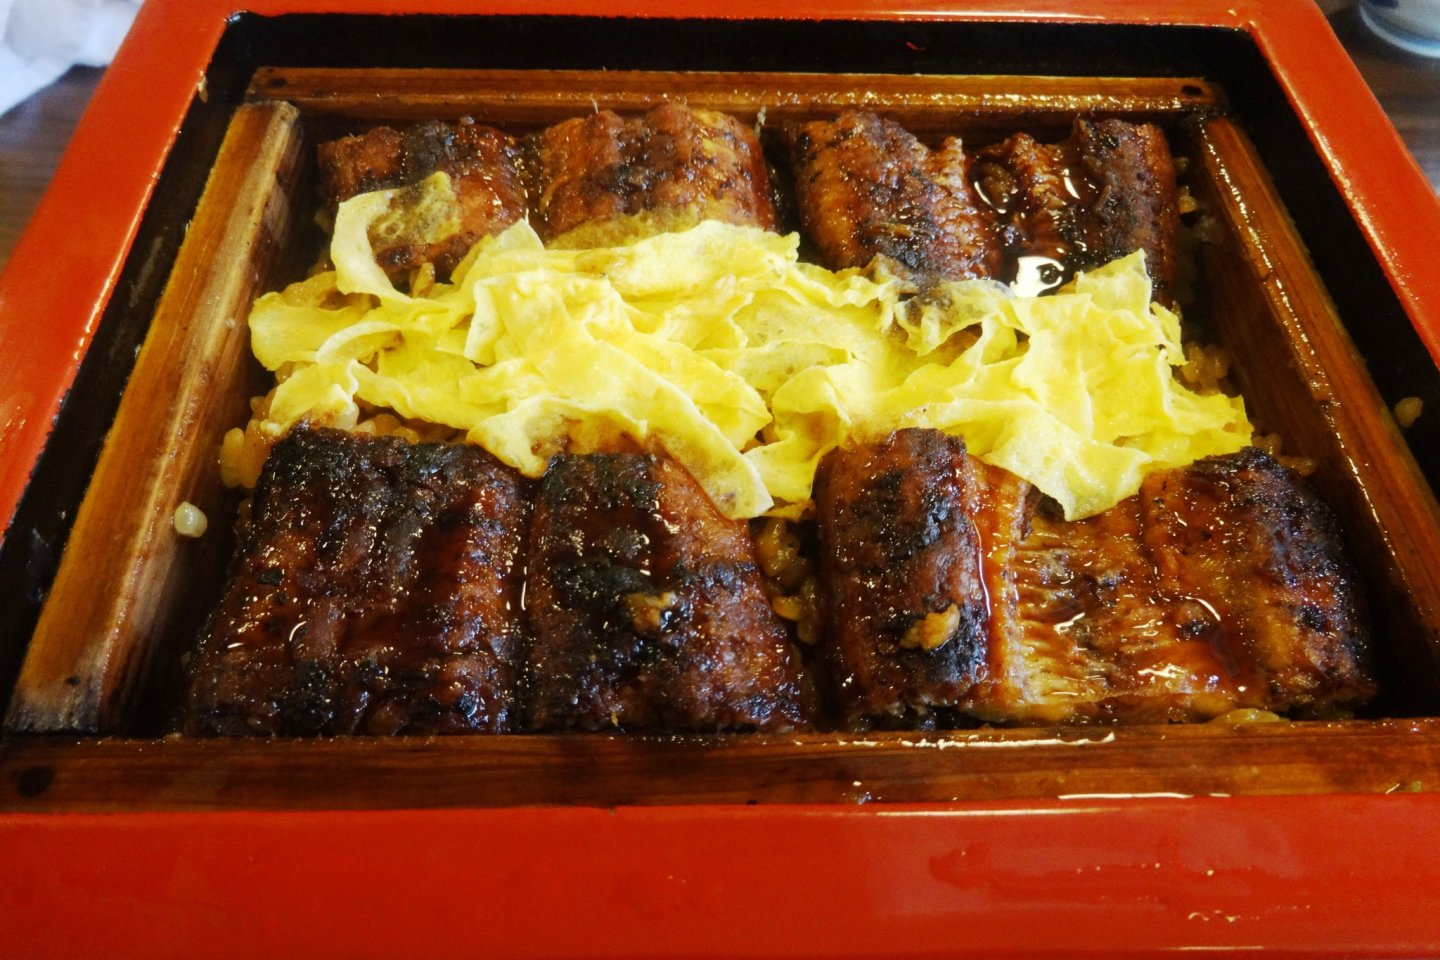 Seiromushi, or steamed eel, a Yanagawa specialty